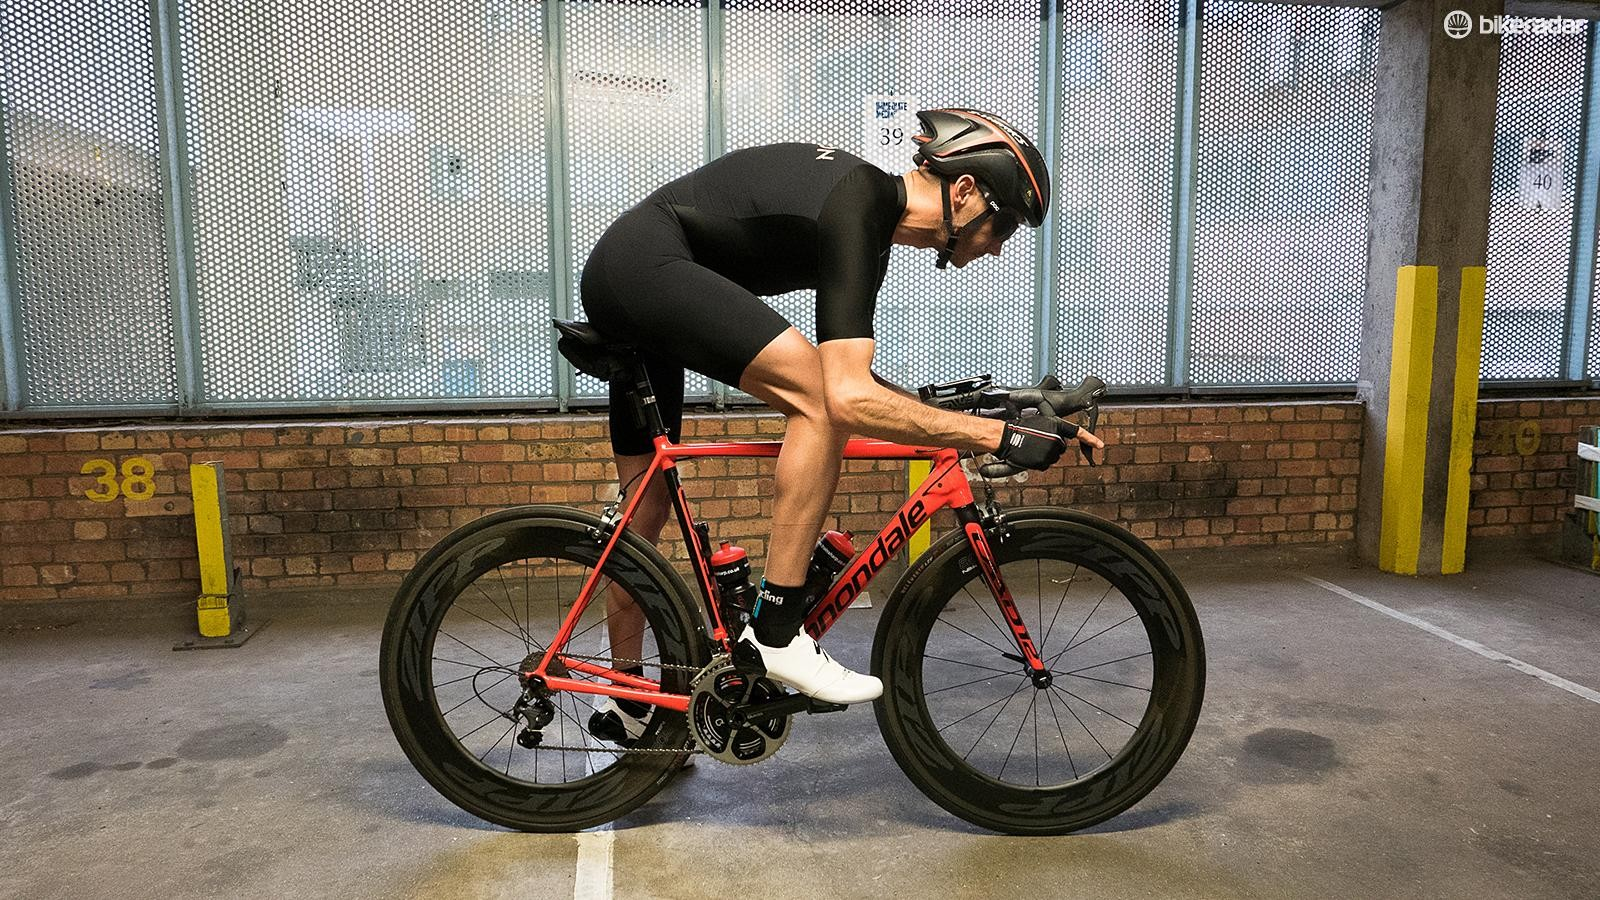 Specialized's S-Works Evade GC skinsuit is claimed to be capable of saving up to 96sec over 40km